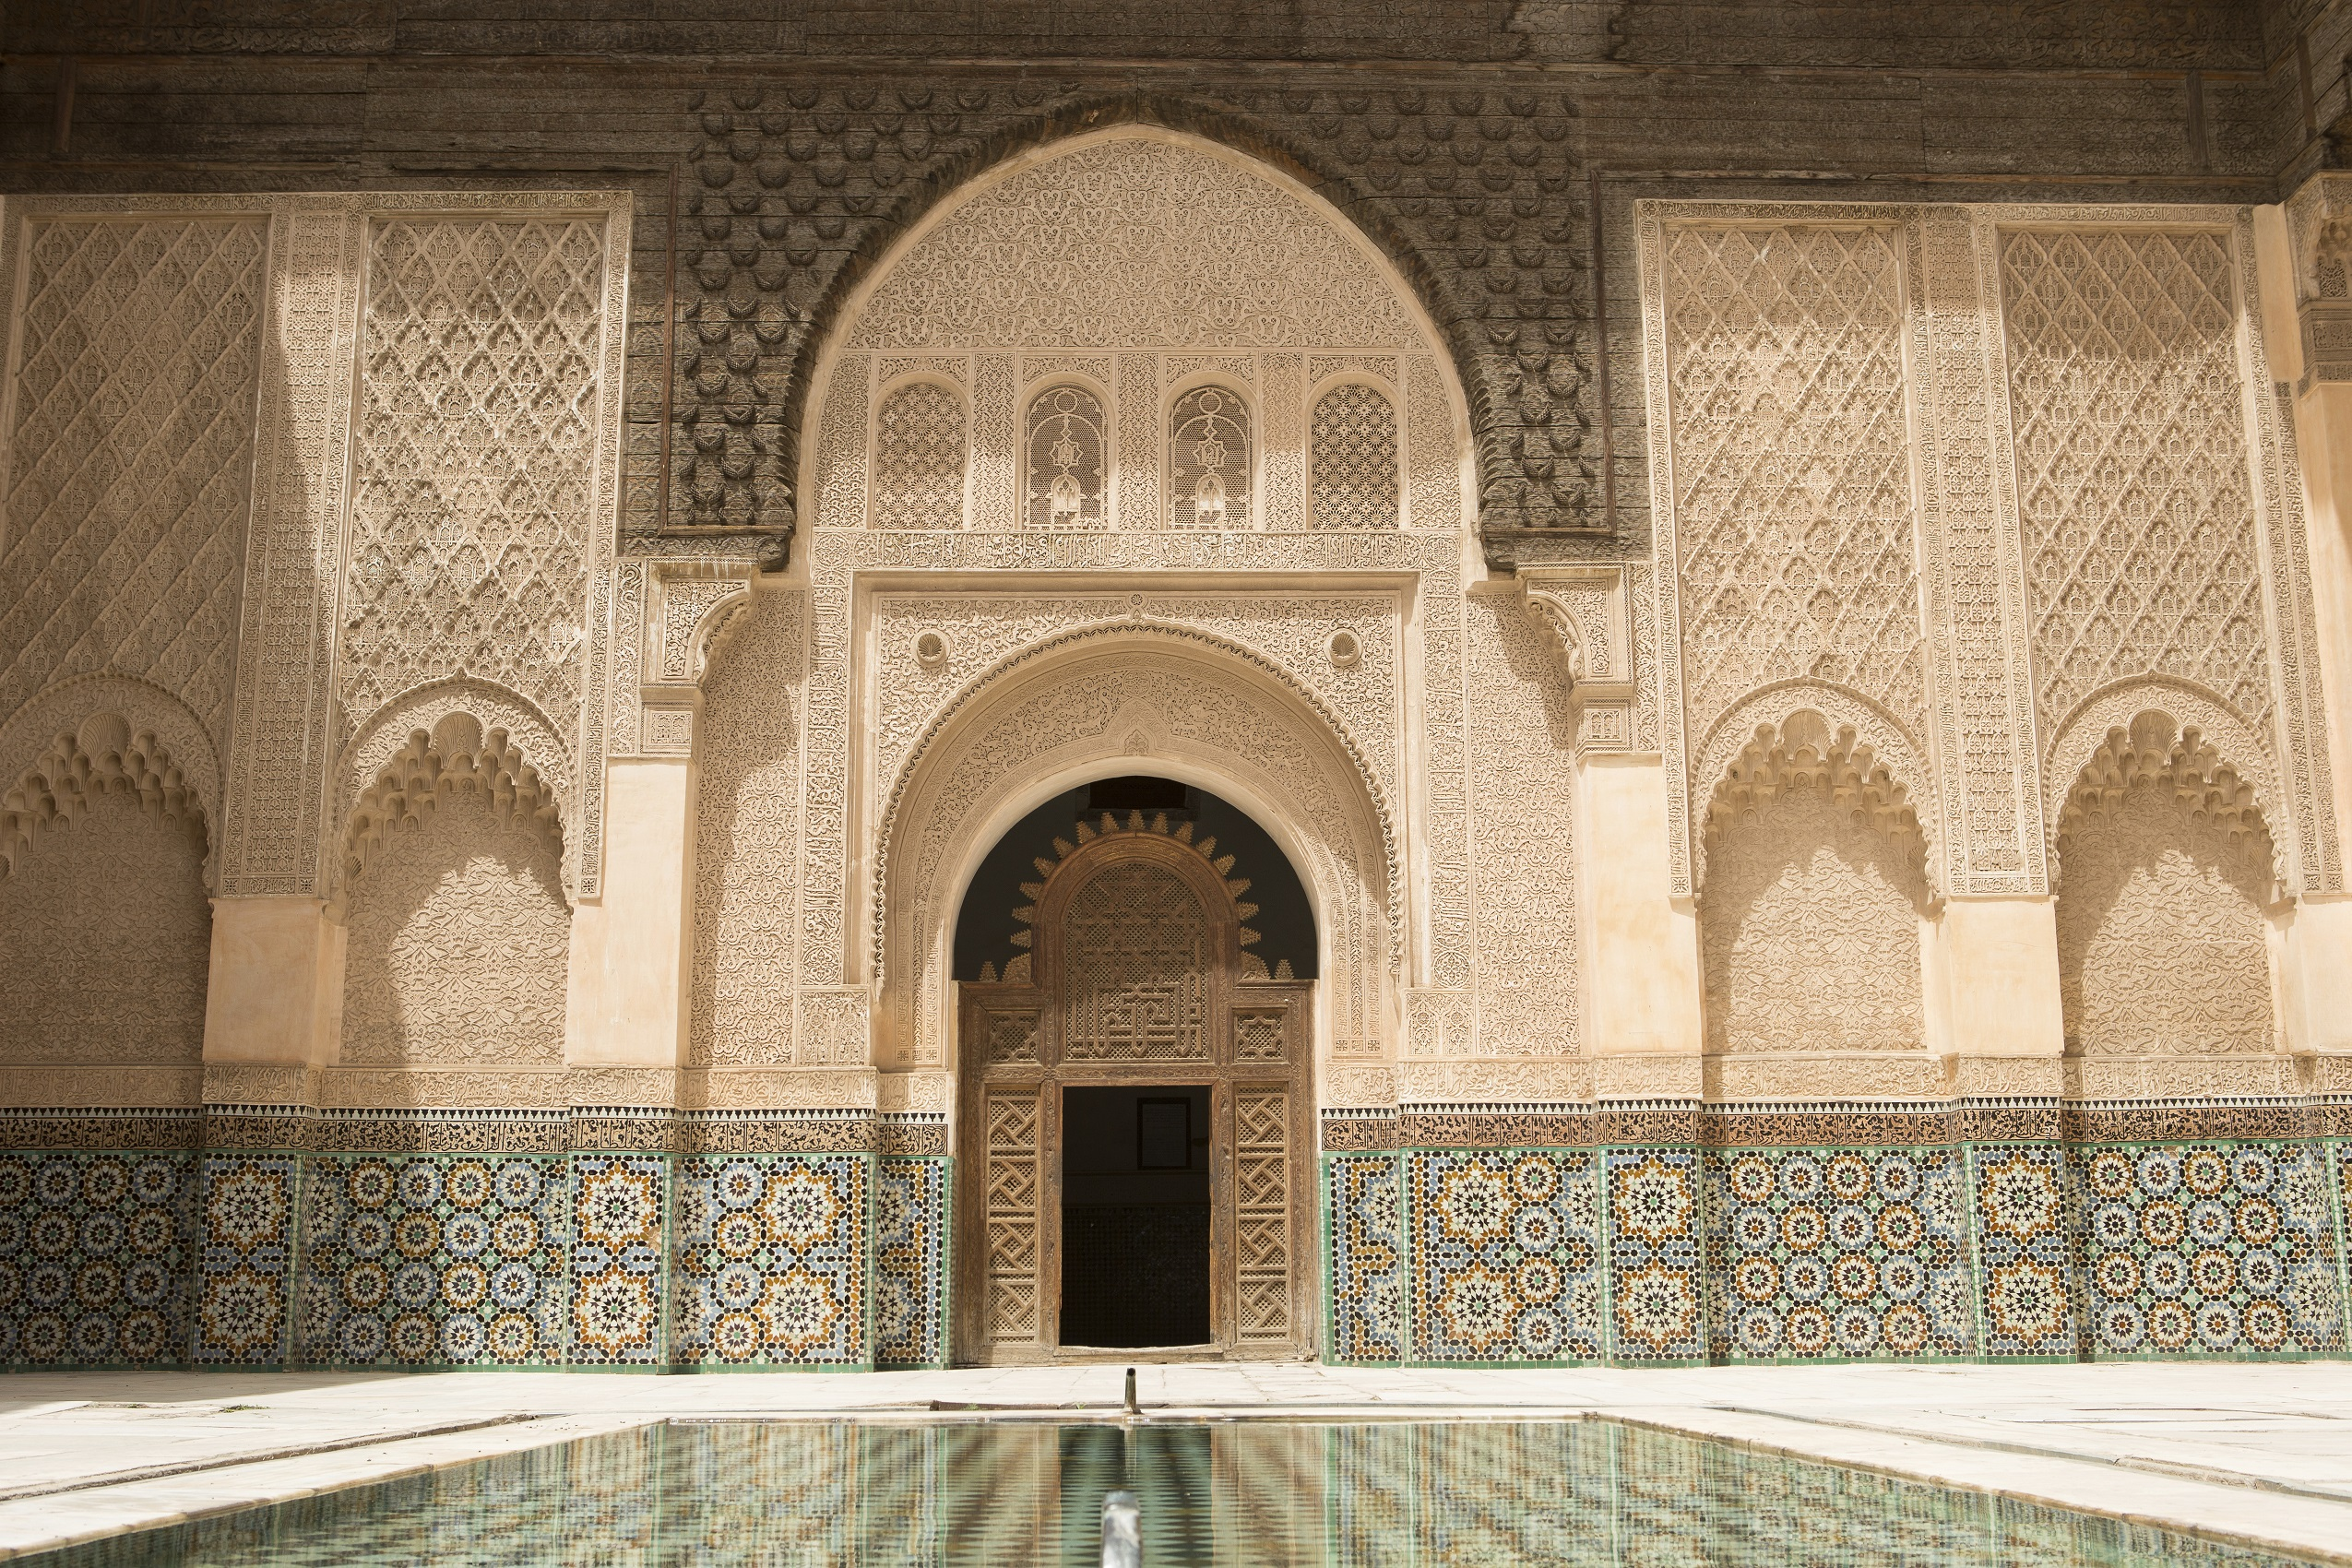 Destination Morocco – Let's Put Morocco on the Map